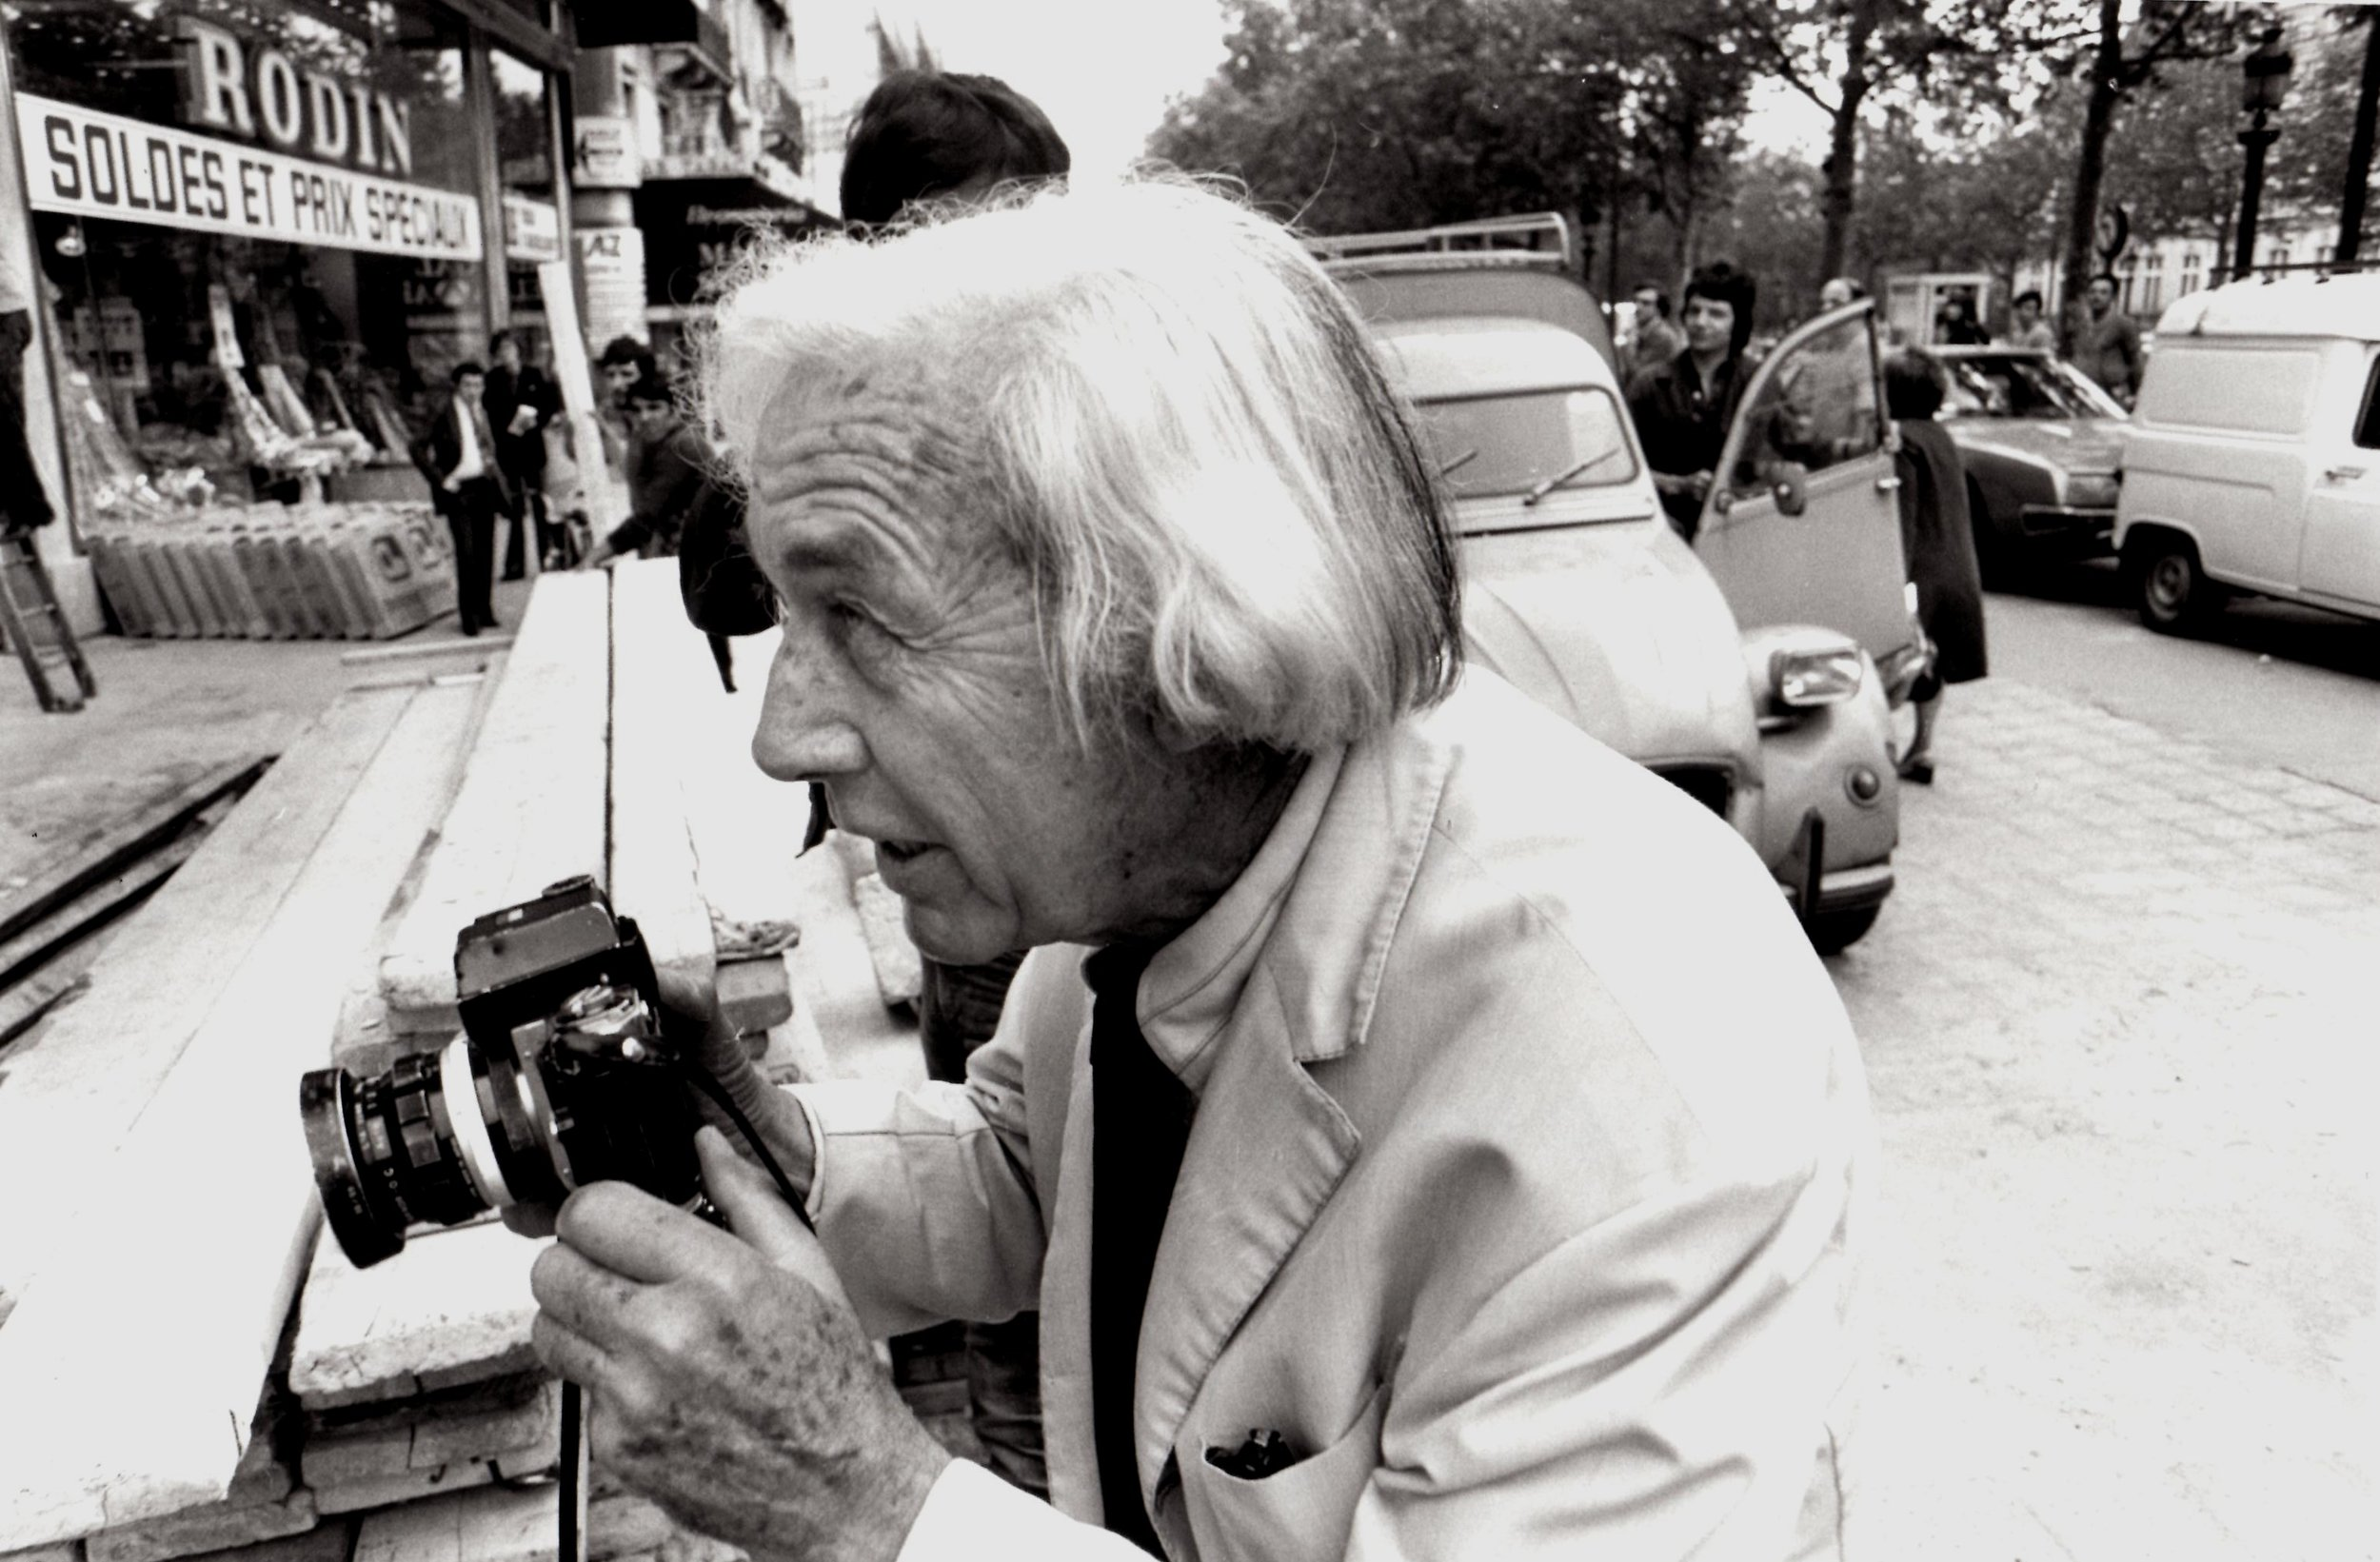 Robert Bresson, Champs-Elysées, Paris, 1976 © Michel Giniès